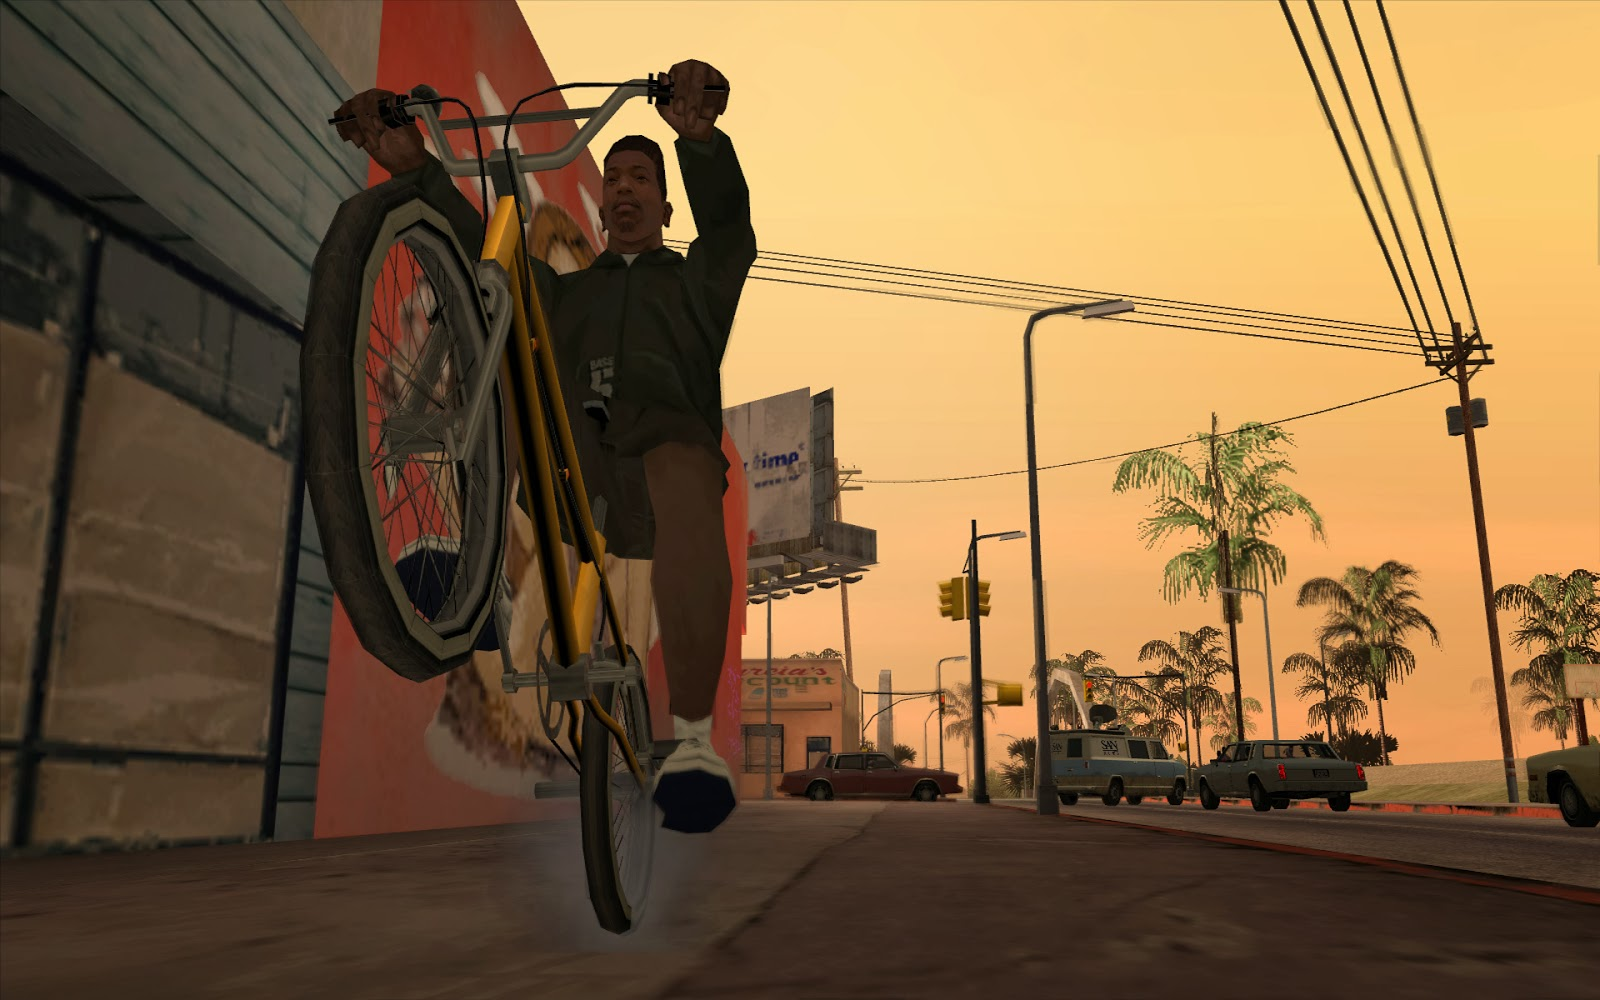 Grand theft auto san andreas pc no cd crack download